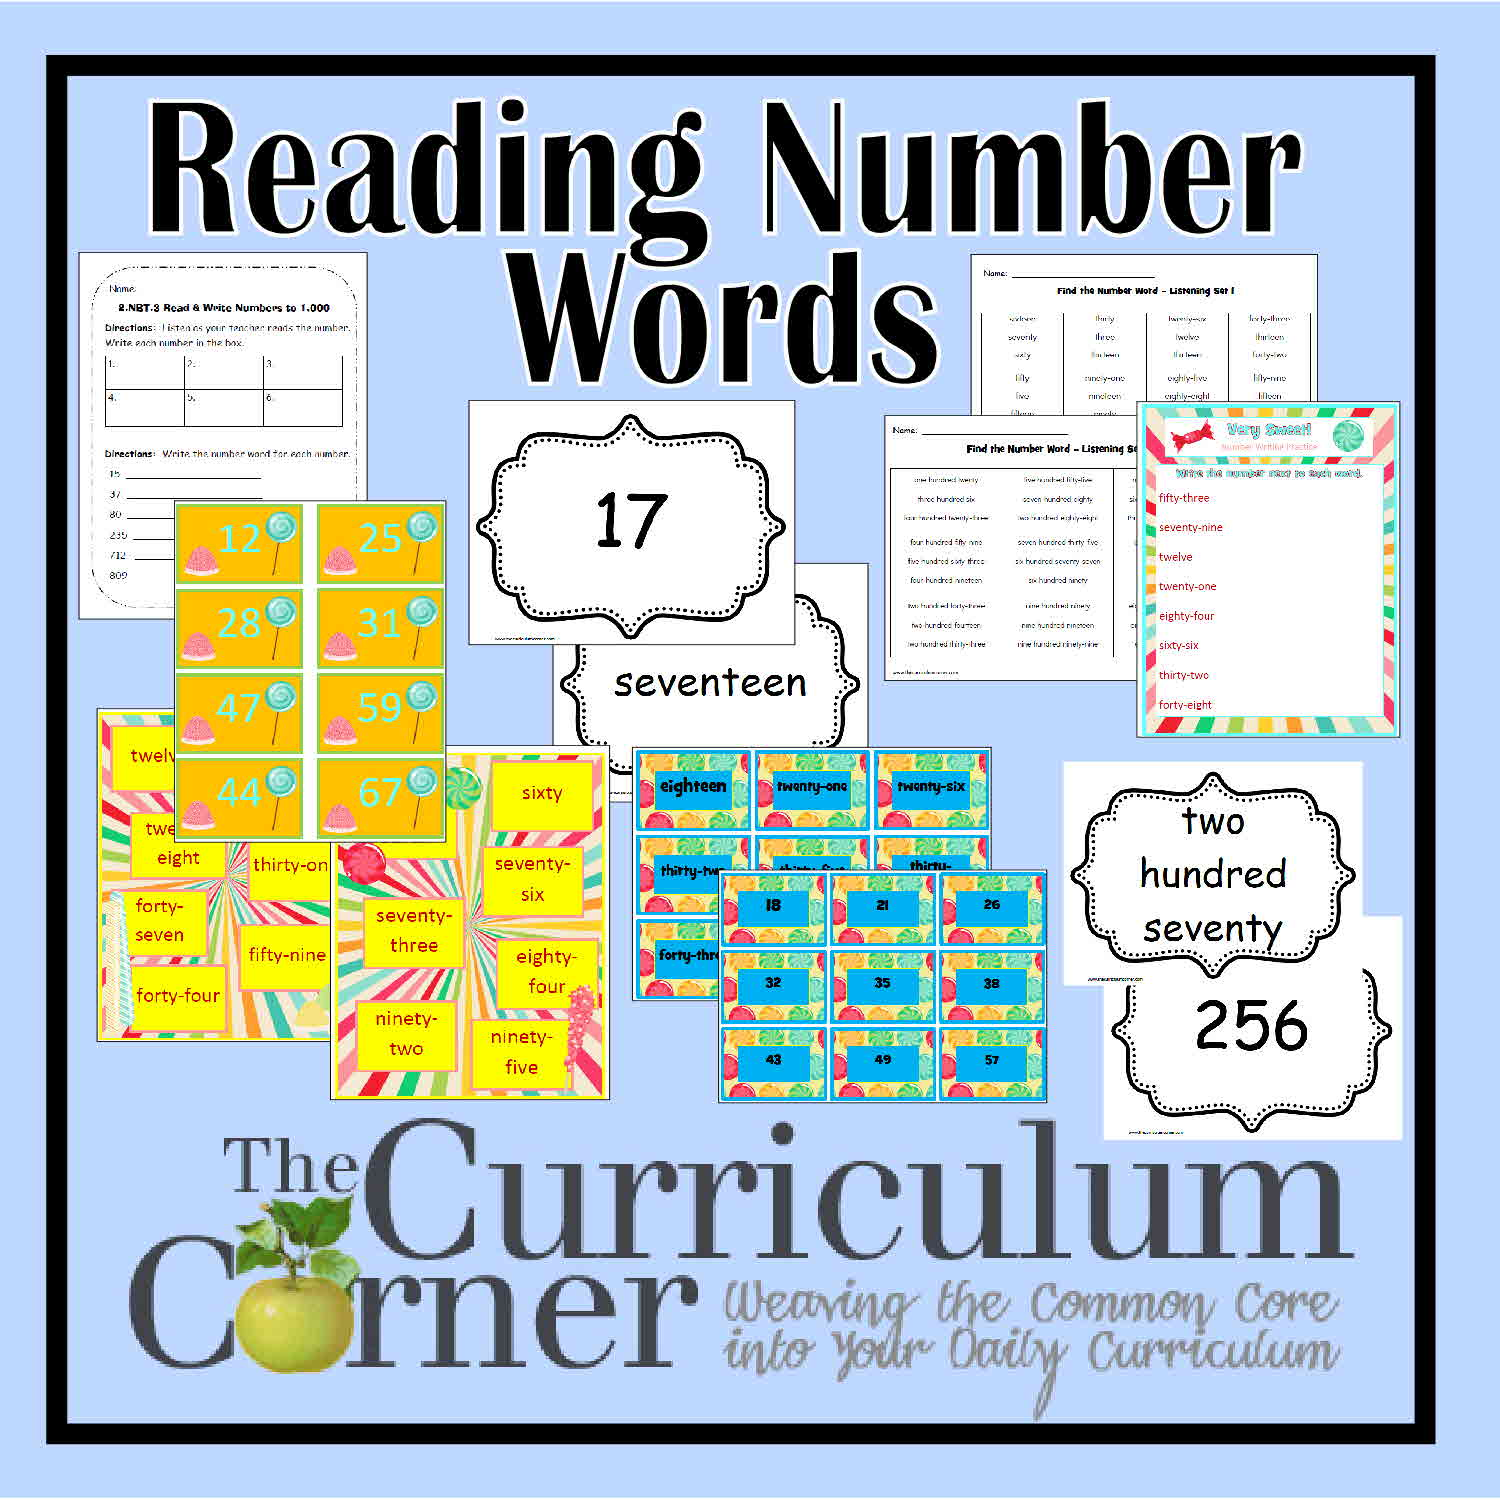 Reading Number Words